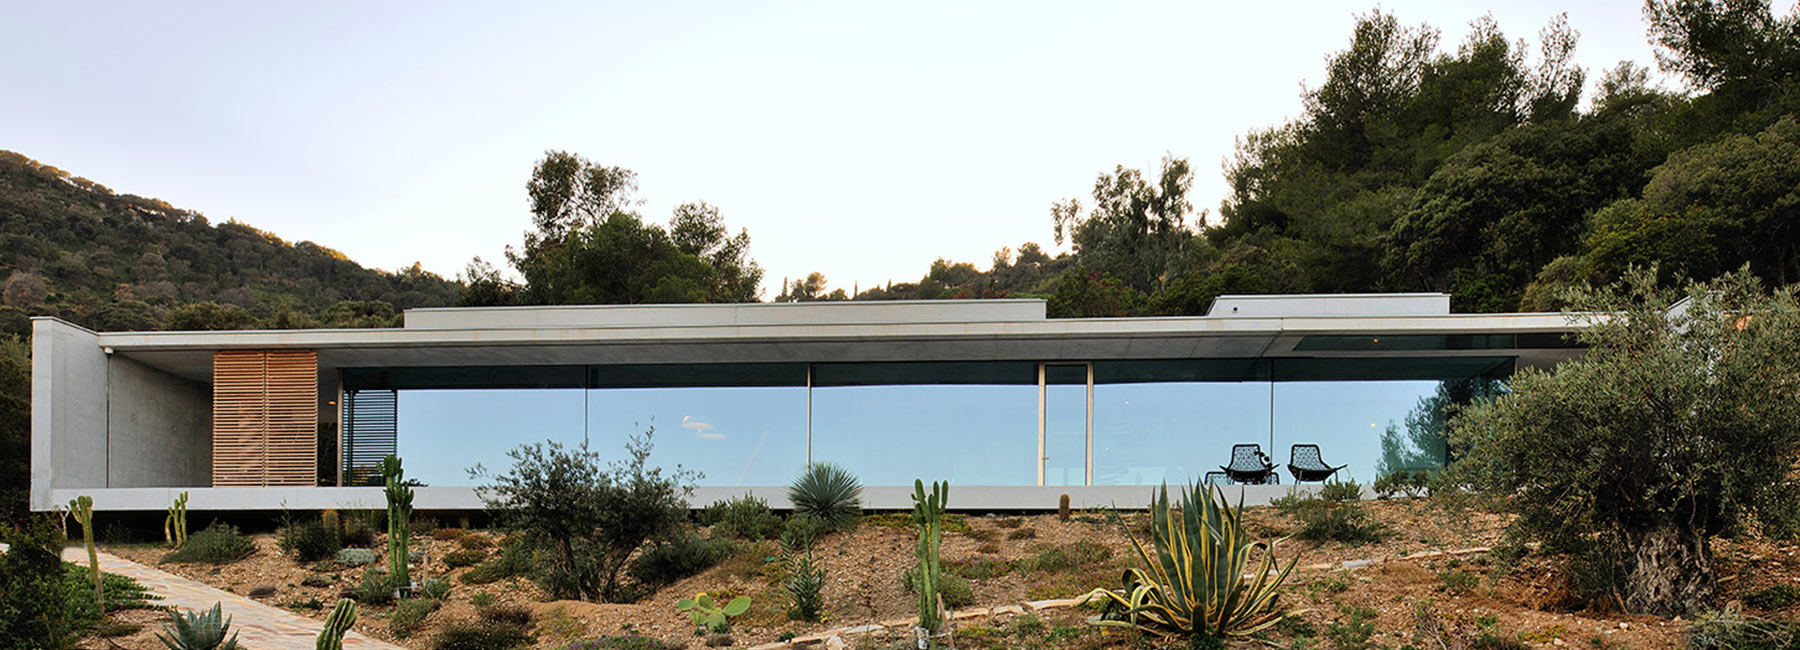 Aum S Stone And Concrete La Mira Ra House In France Offers